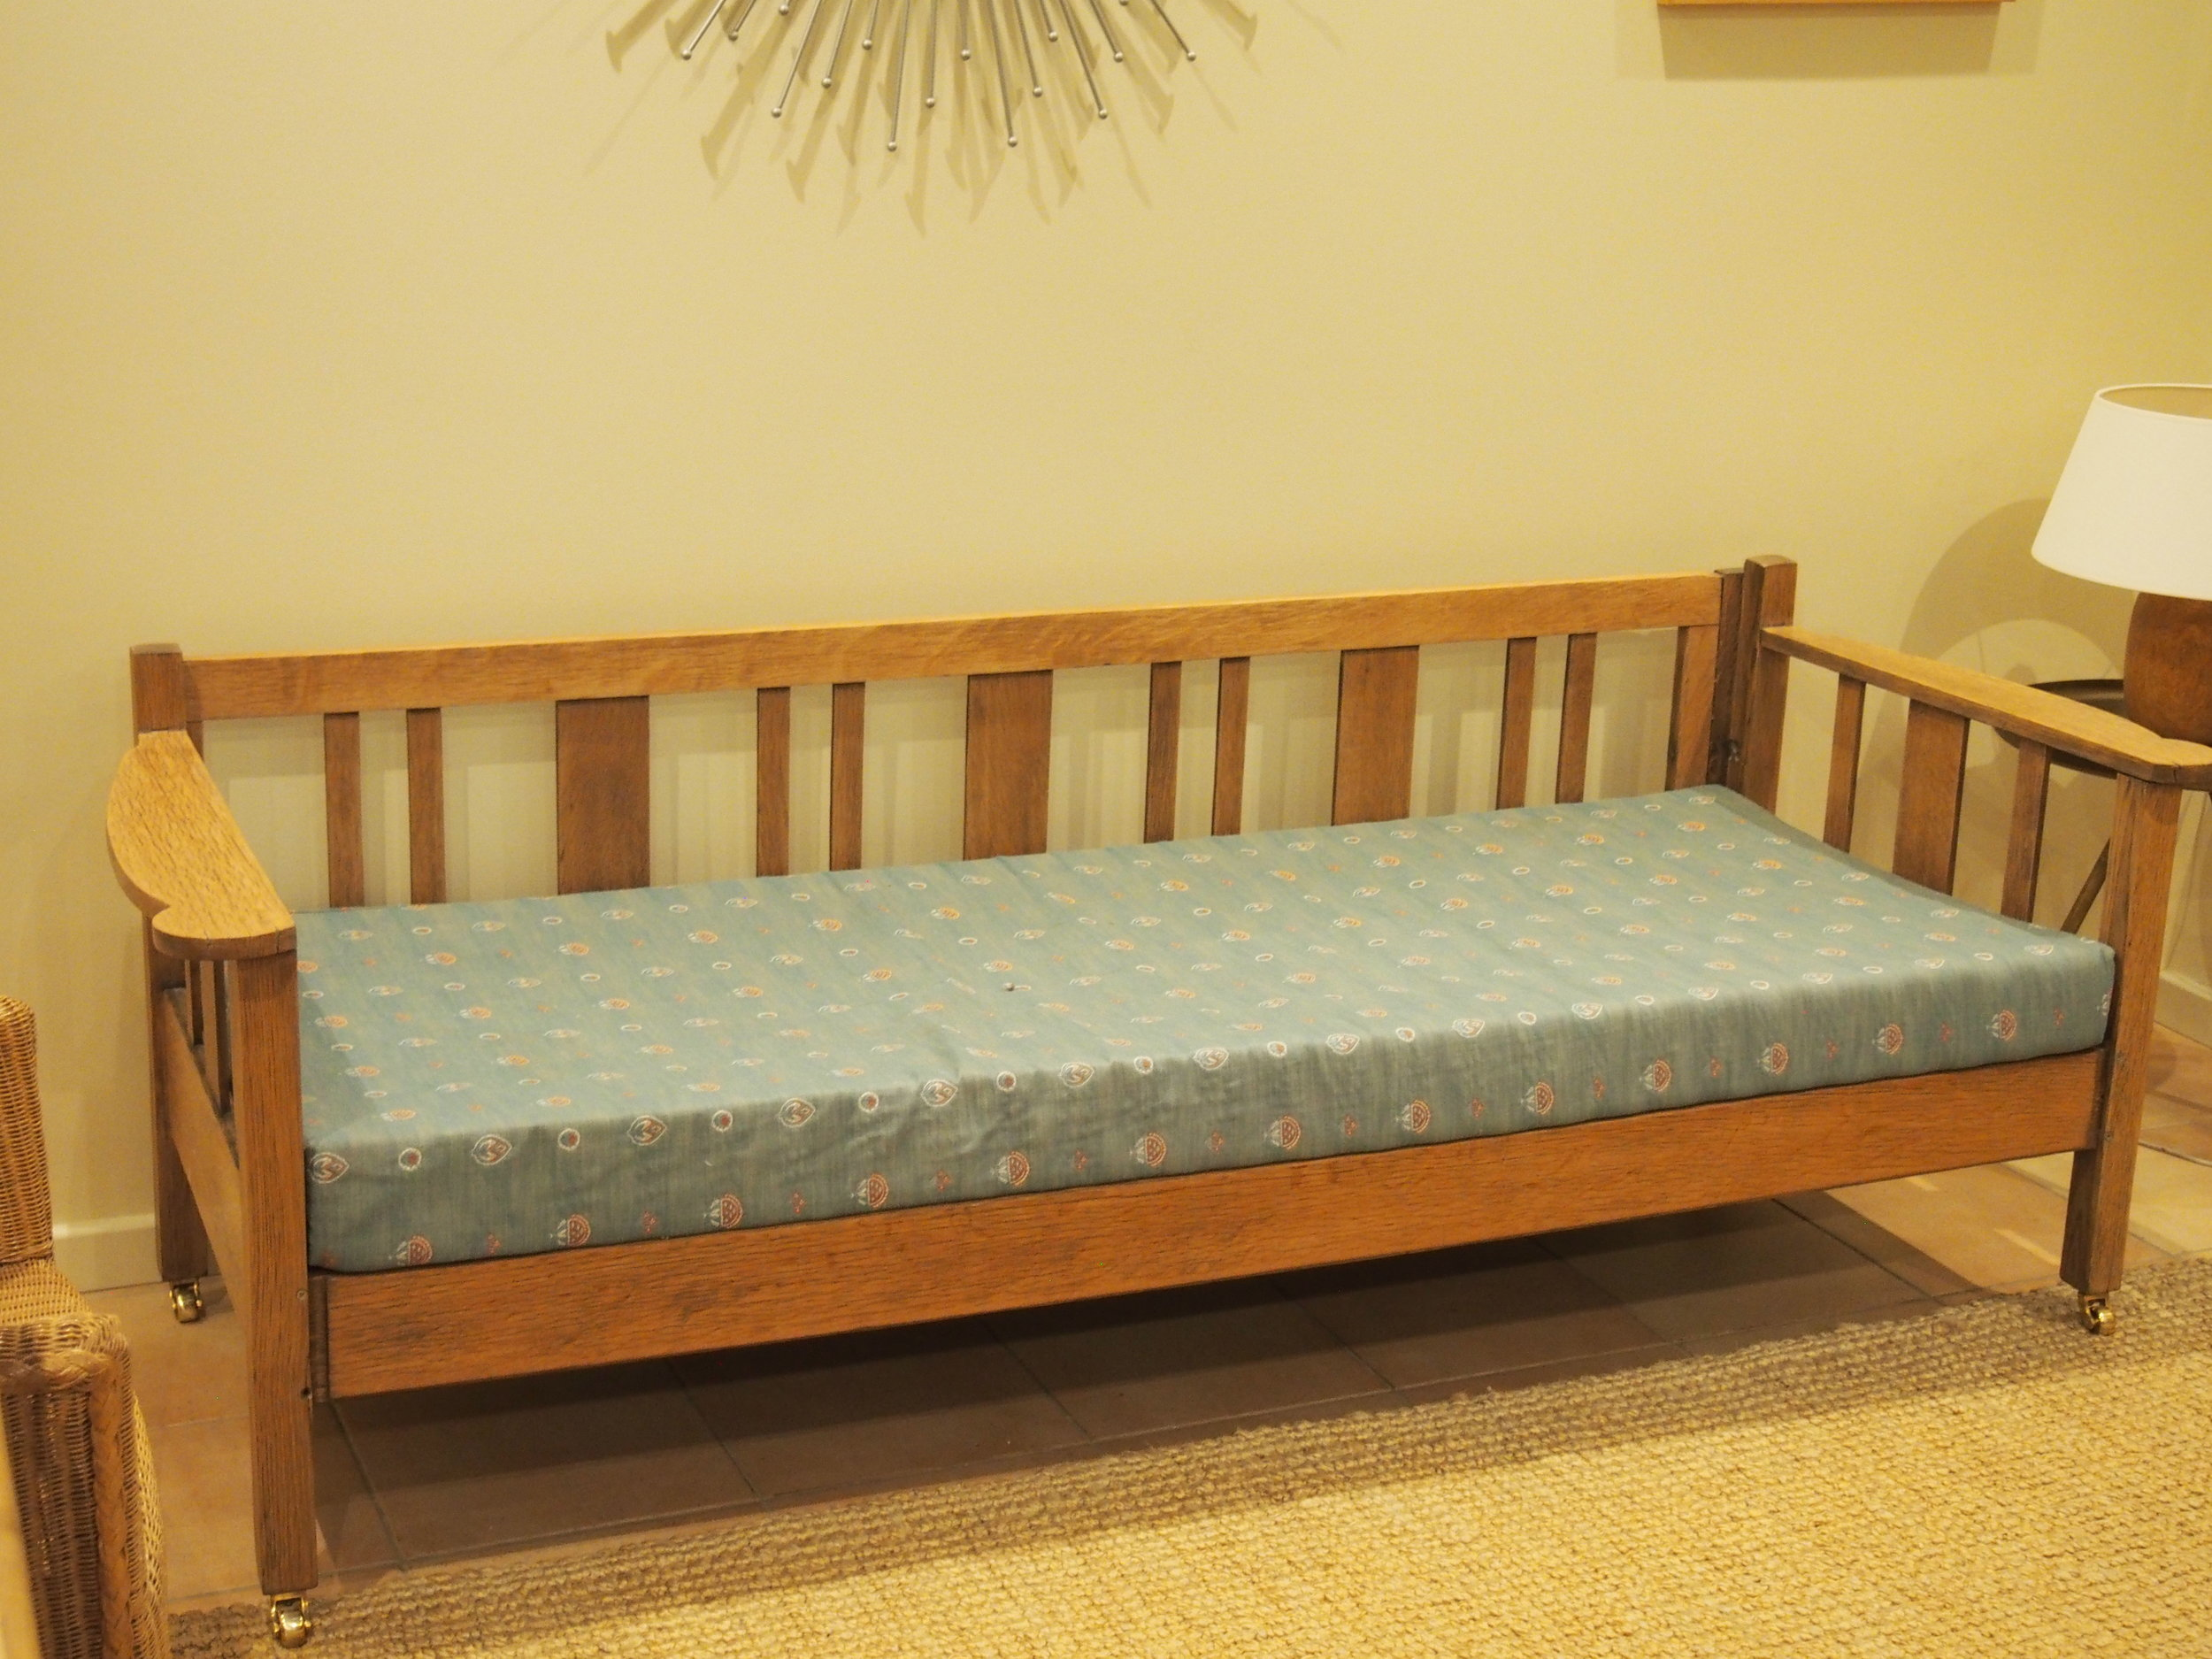 The 1920's Oak Day Bed was finished with a clear polish and protected with a wax finish. Four new solid brass castors were applied and a small split in the wood was glued close.